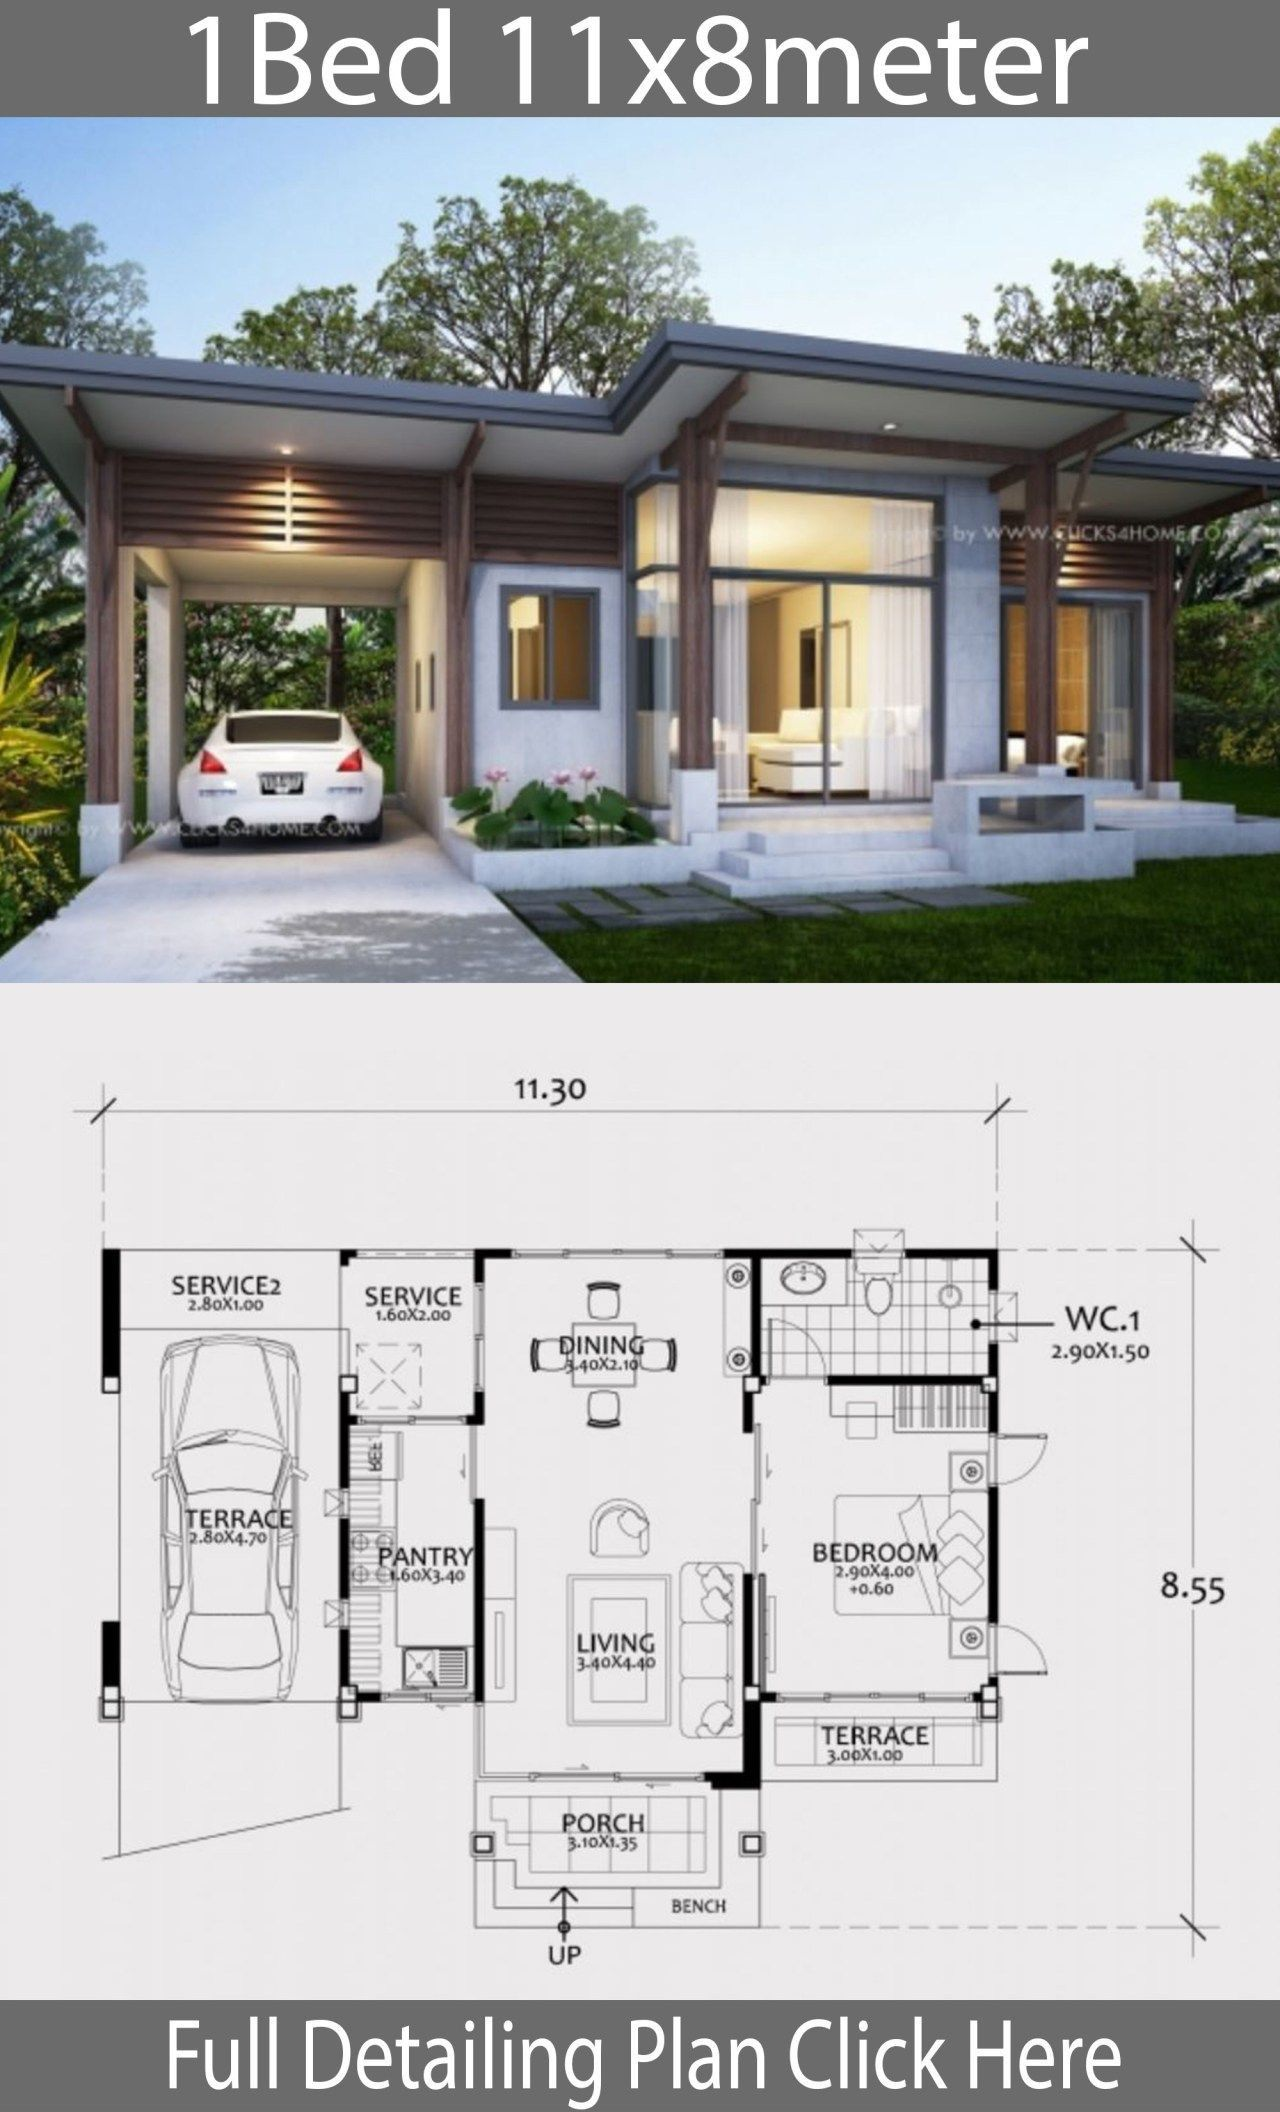 Best Of House Design Plans One Floor Small Home Design Plan 11x8m With E Bedroom In 2020 Bungalow House Design Modern Bungalow House Small Modern Home